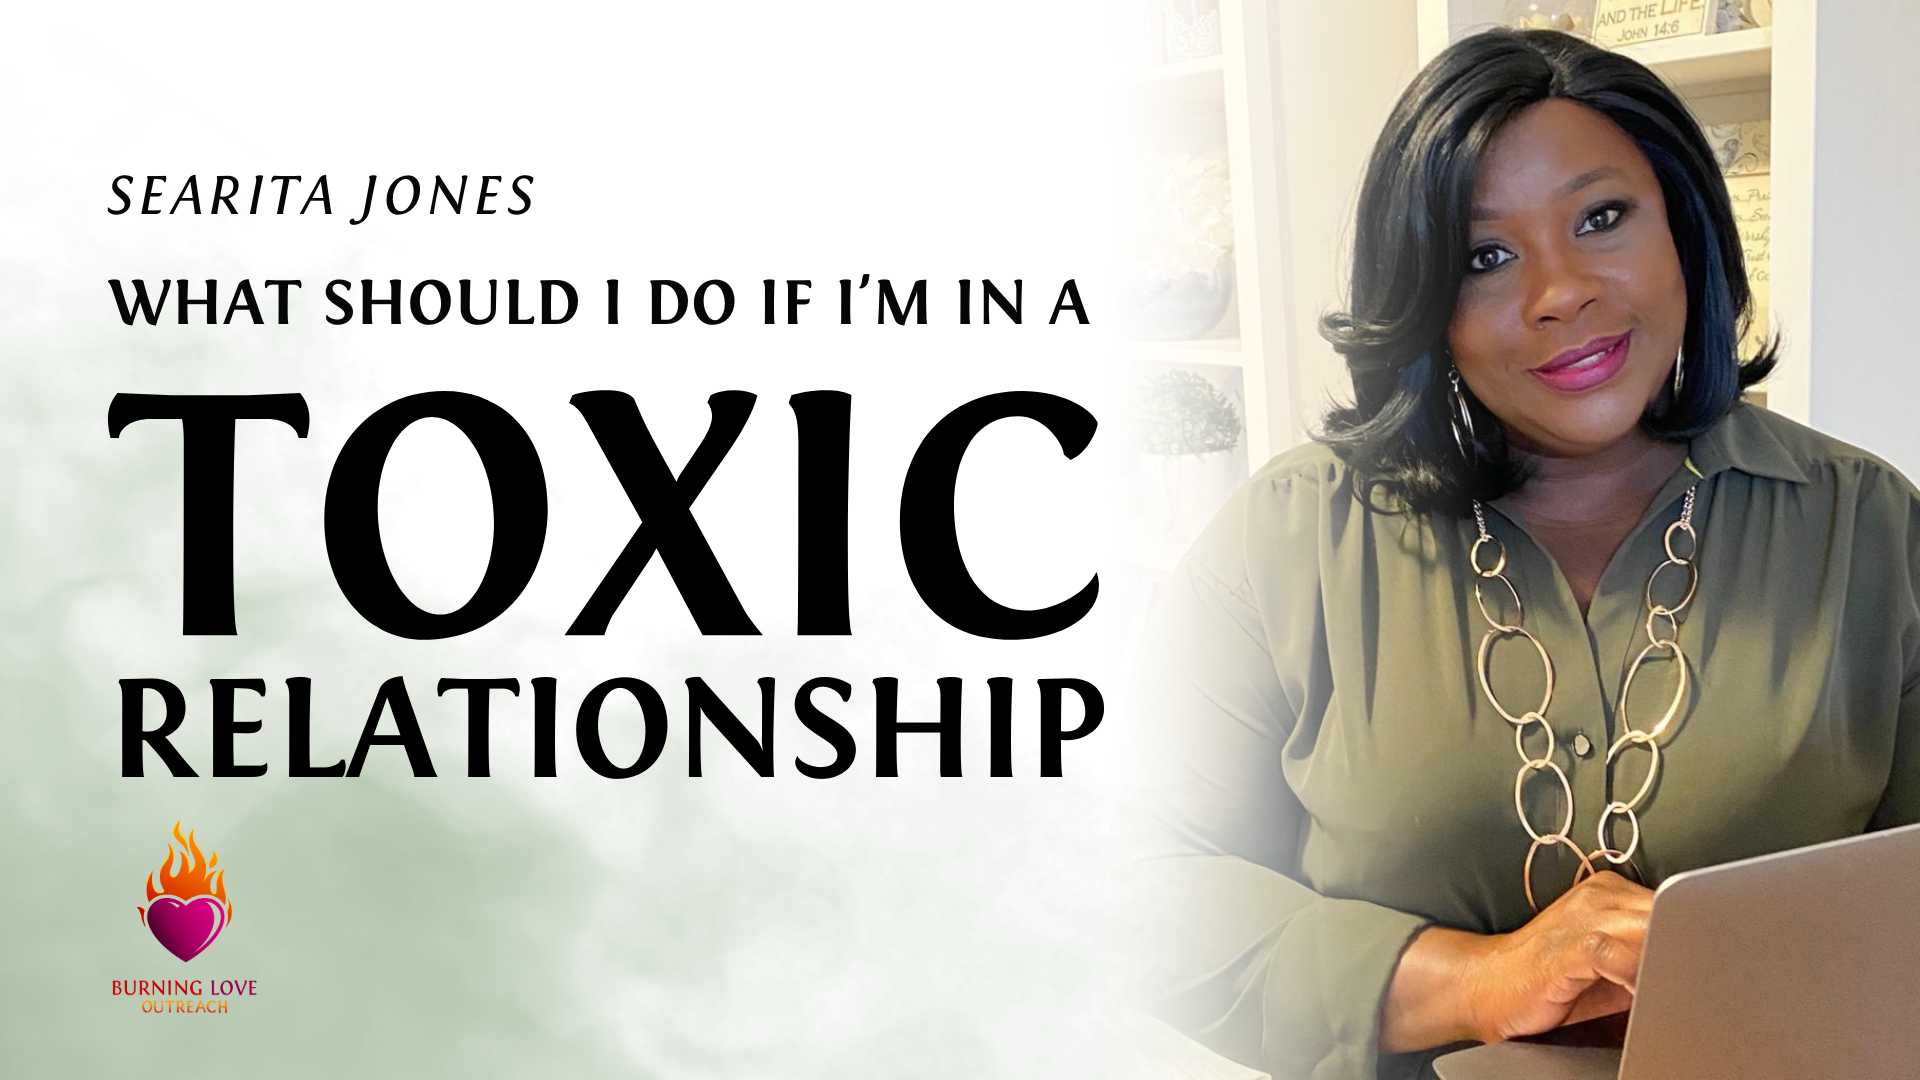 What Should I Do If I'm In A Toxic Relationship